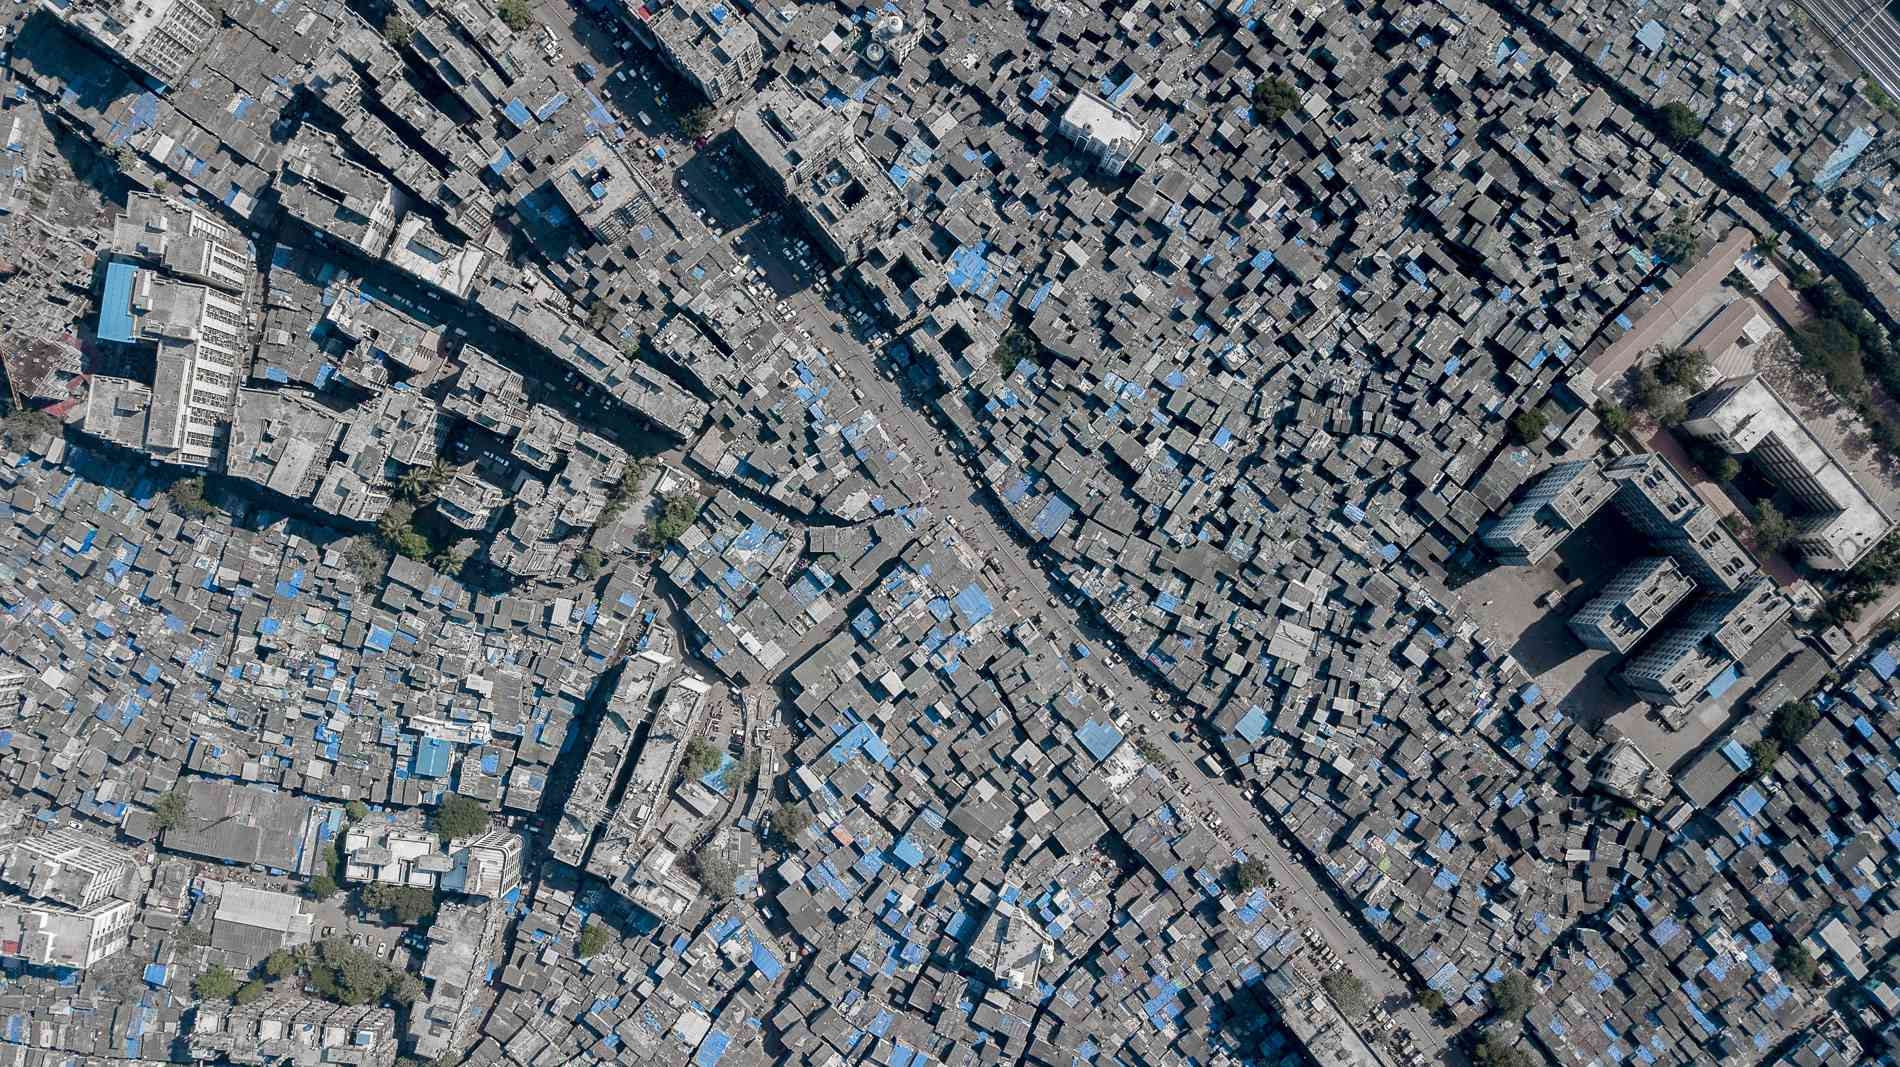 An aerial view of Dharavi.